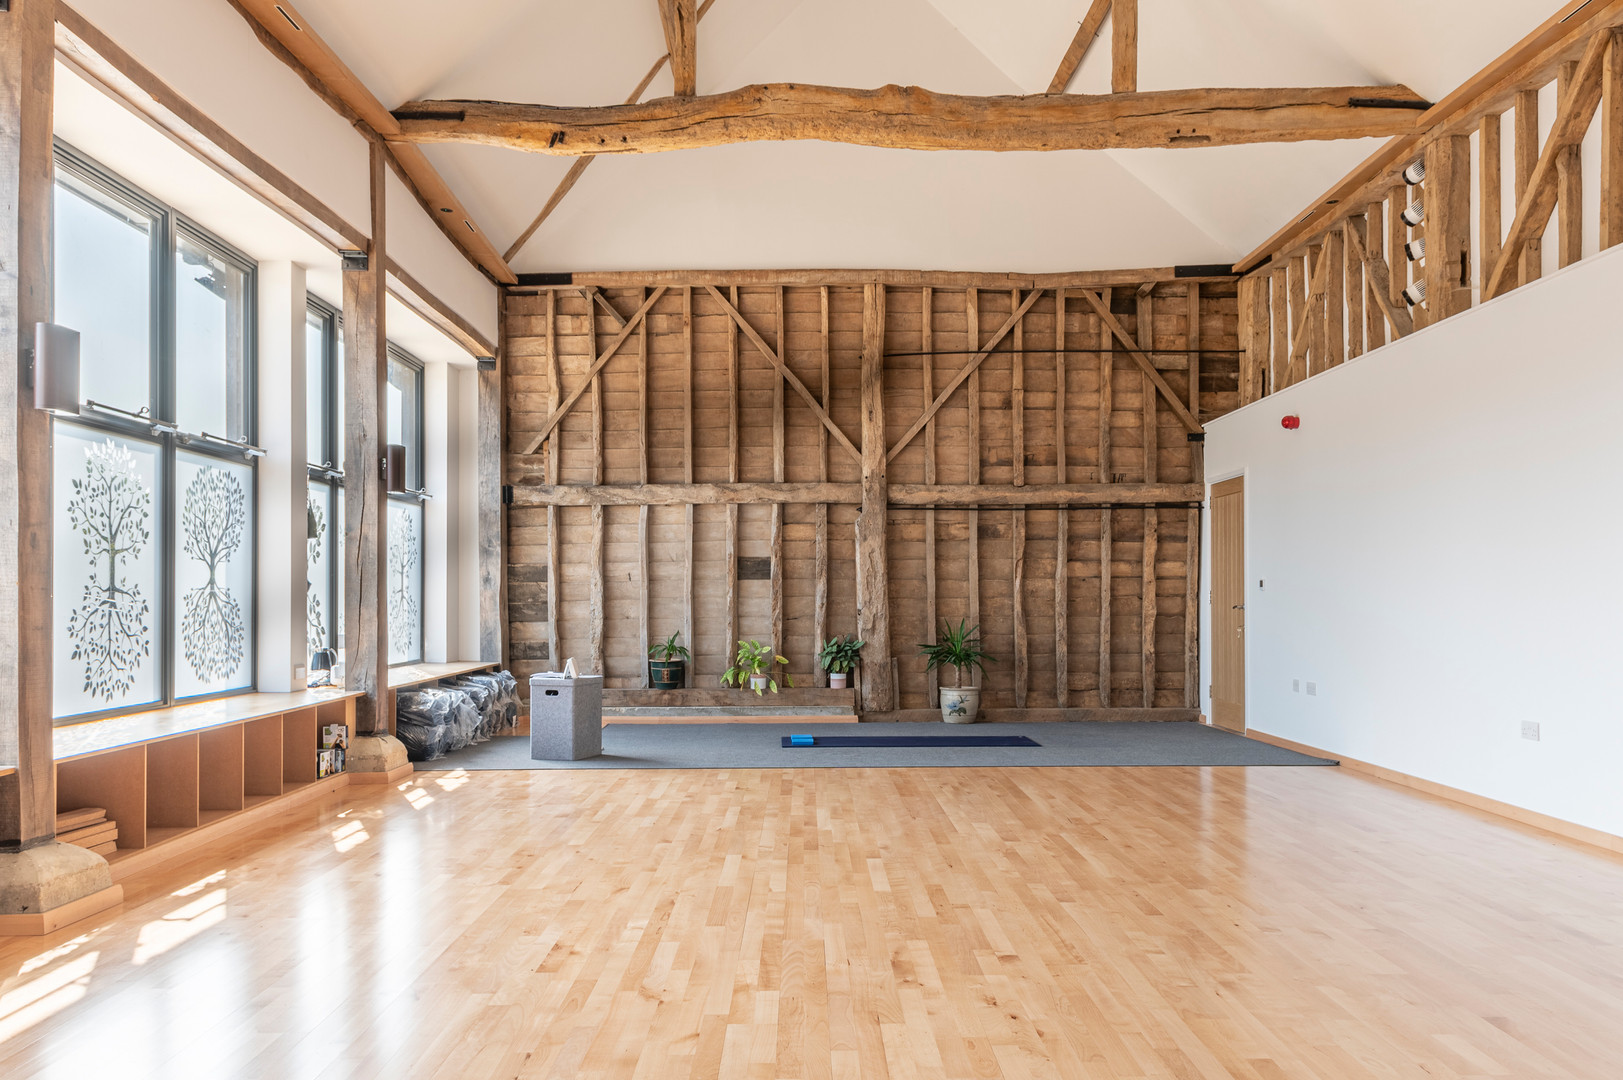 The studio at the Barn at Denbies Wine Estate